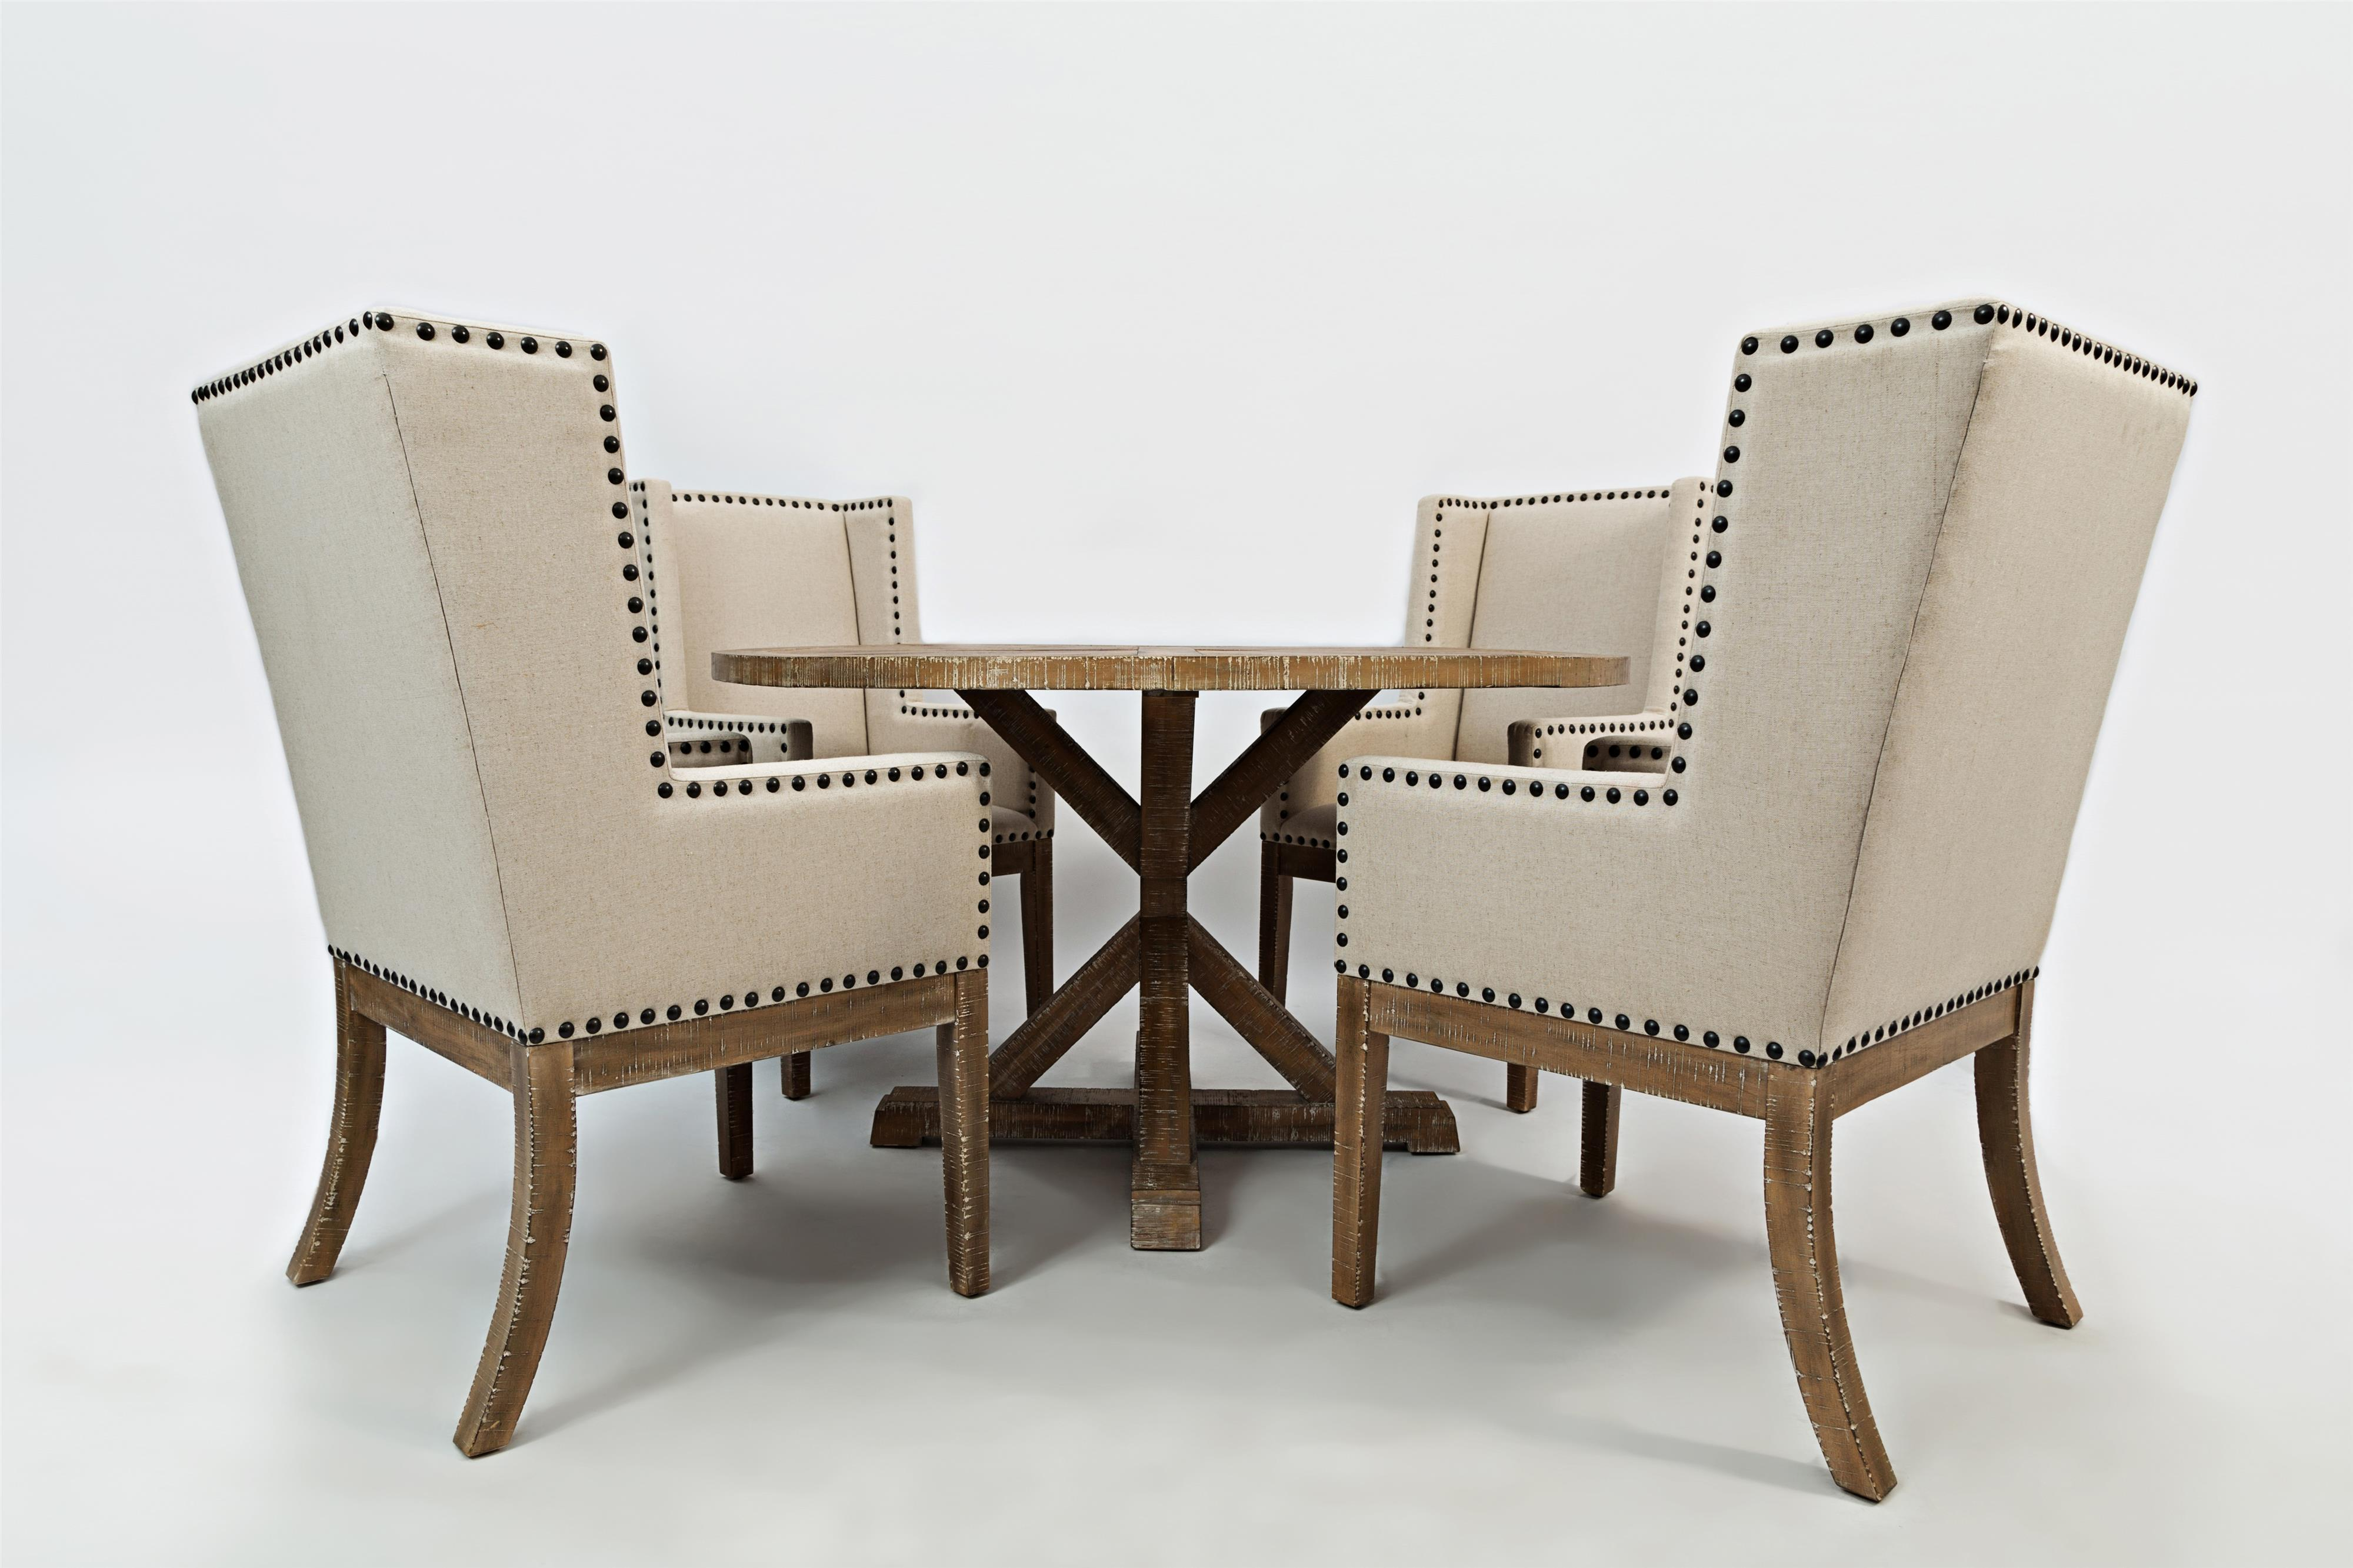 Morris Home Furnishings Pacific Heights Outerbanks Round Dining Table and Chair Set - Item Number: 1590-52B+52T+4x198KD